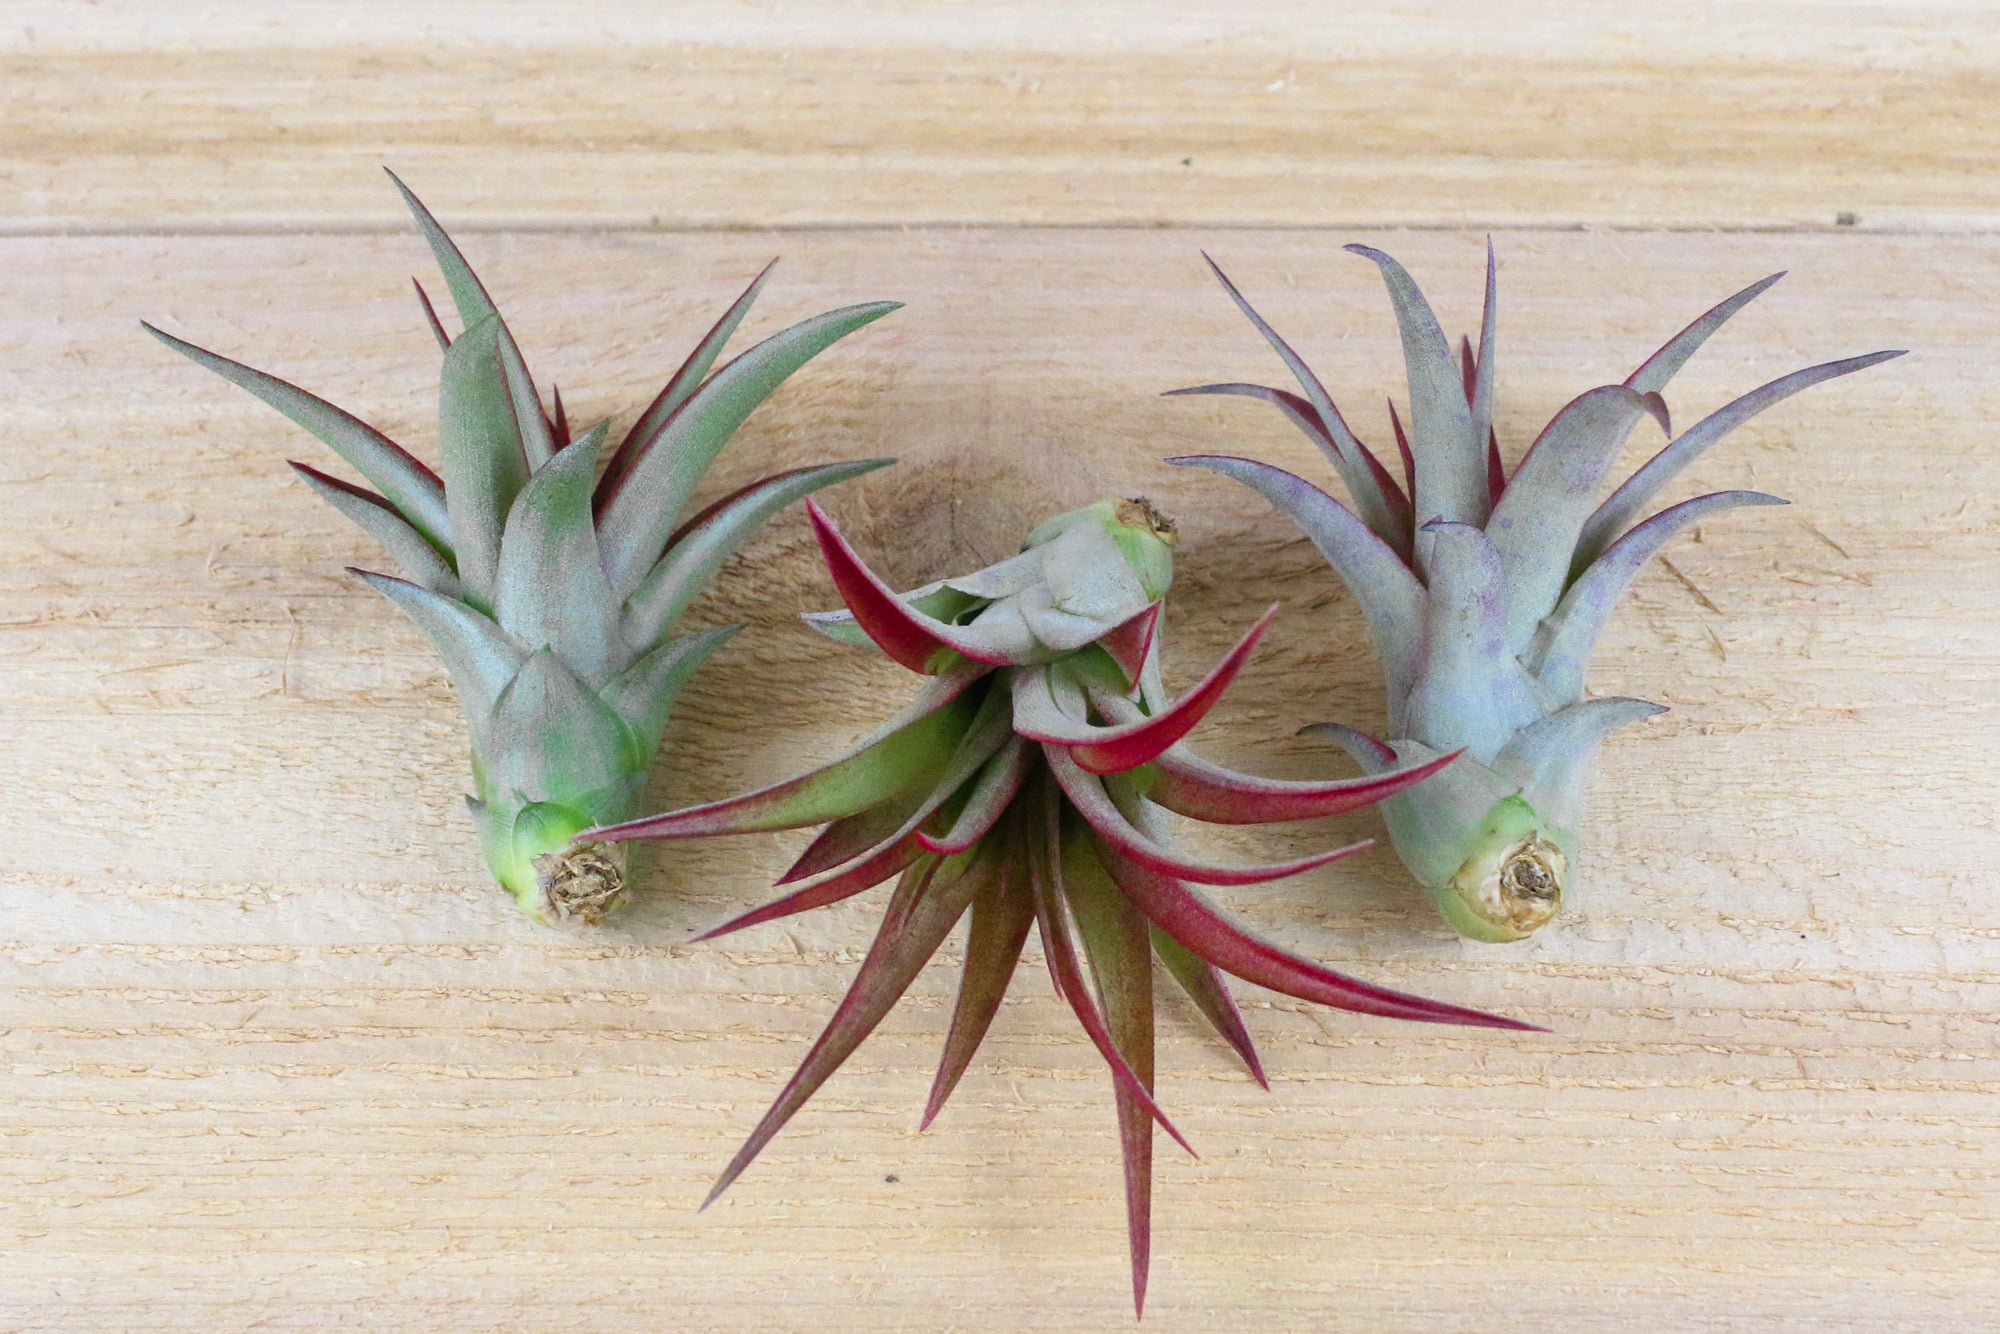 Wholesale: Tillandsia Red Abdita Air Plants [Min Order 12] from AirPlantShop.com